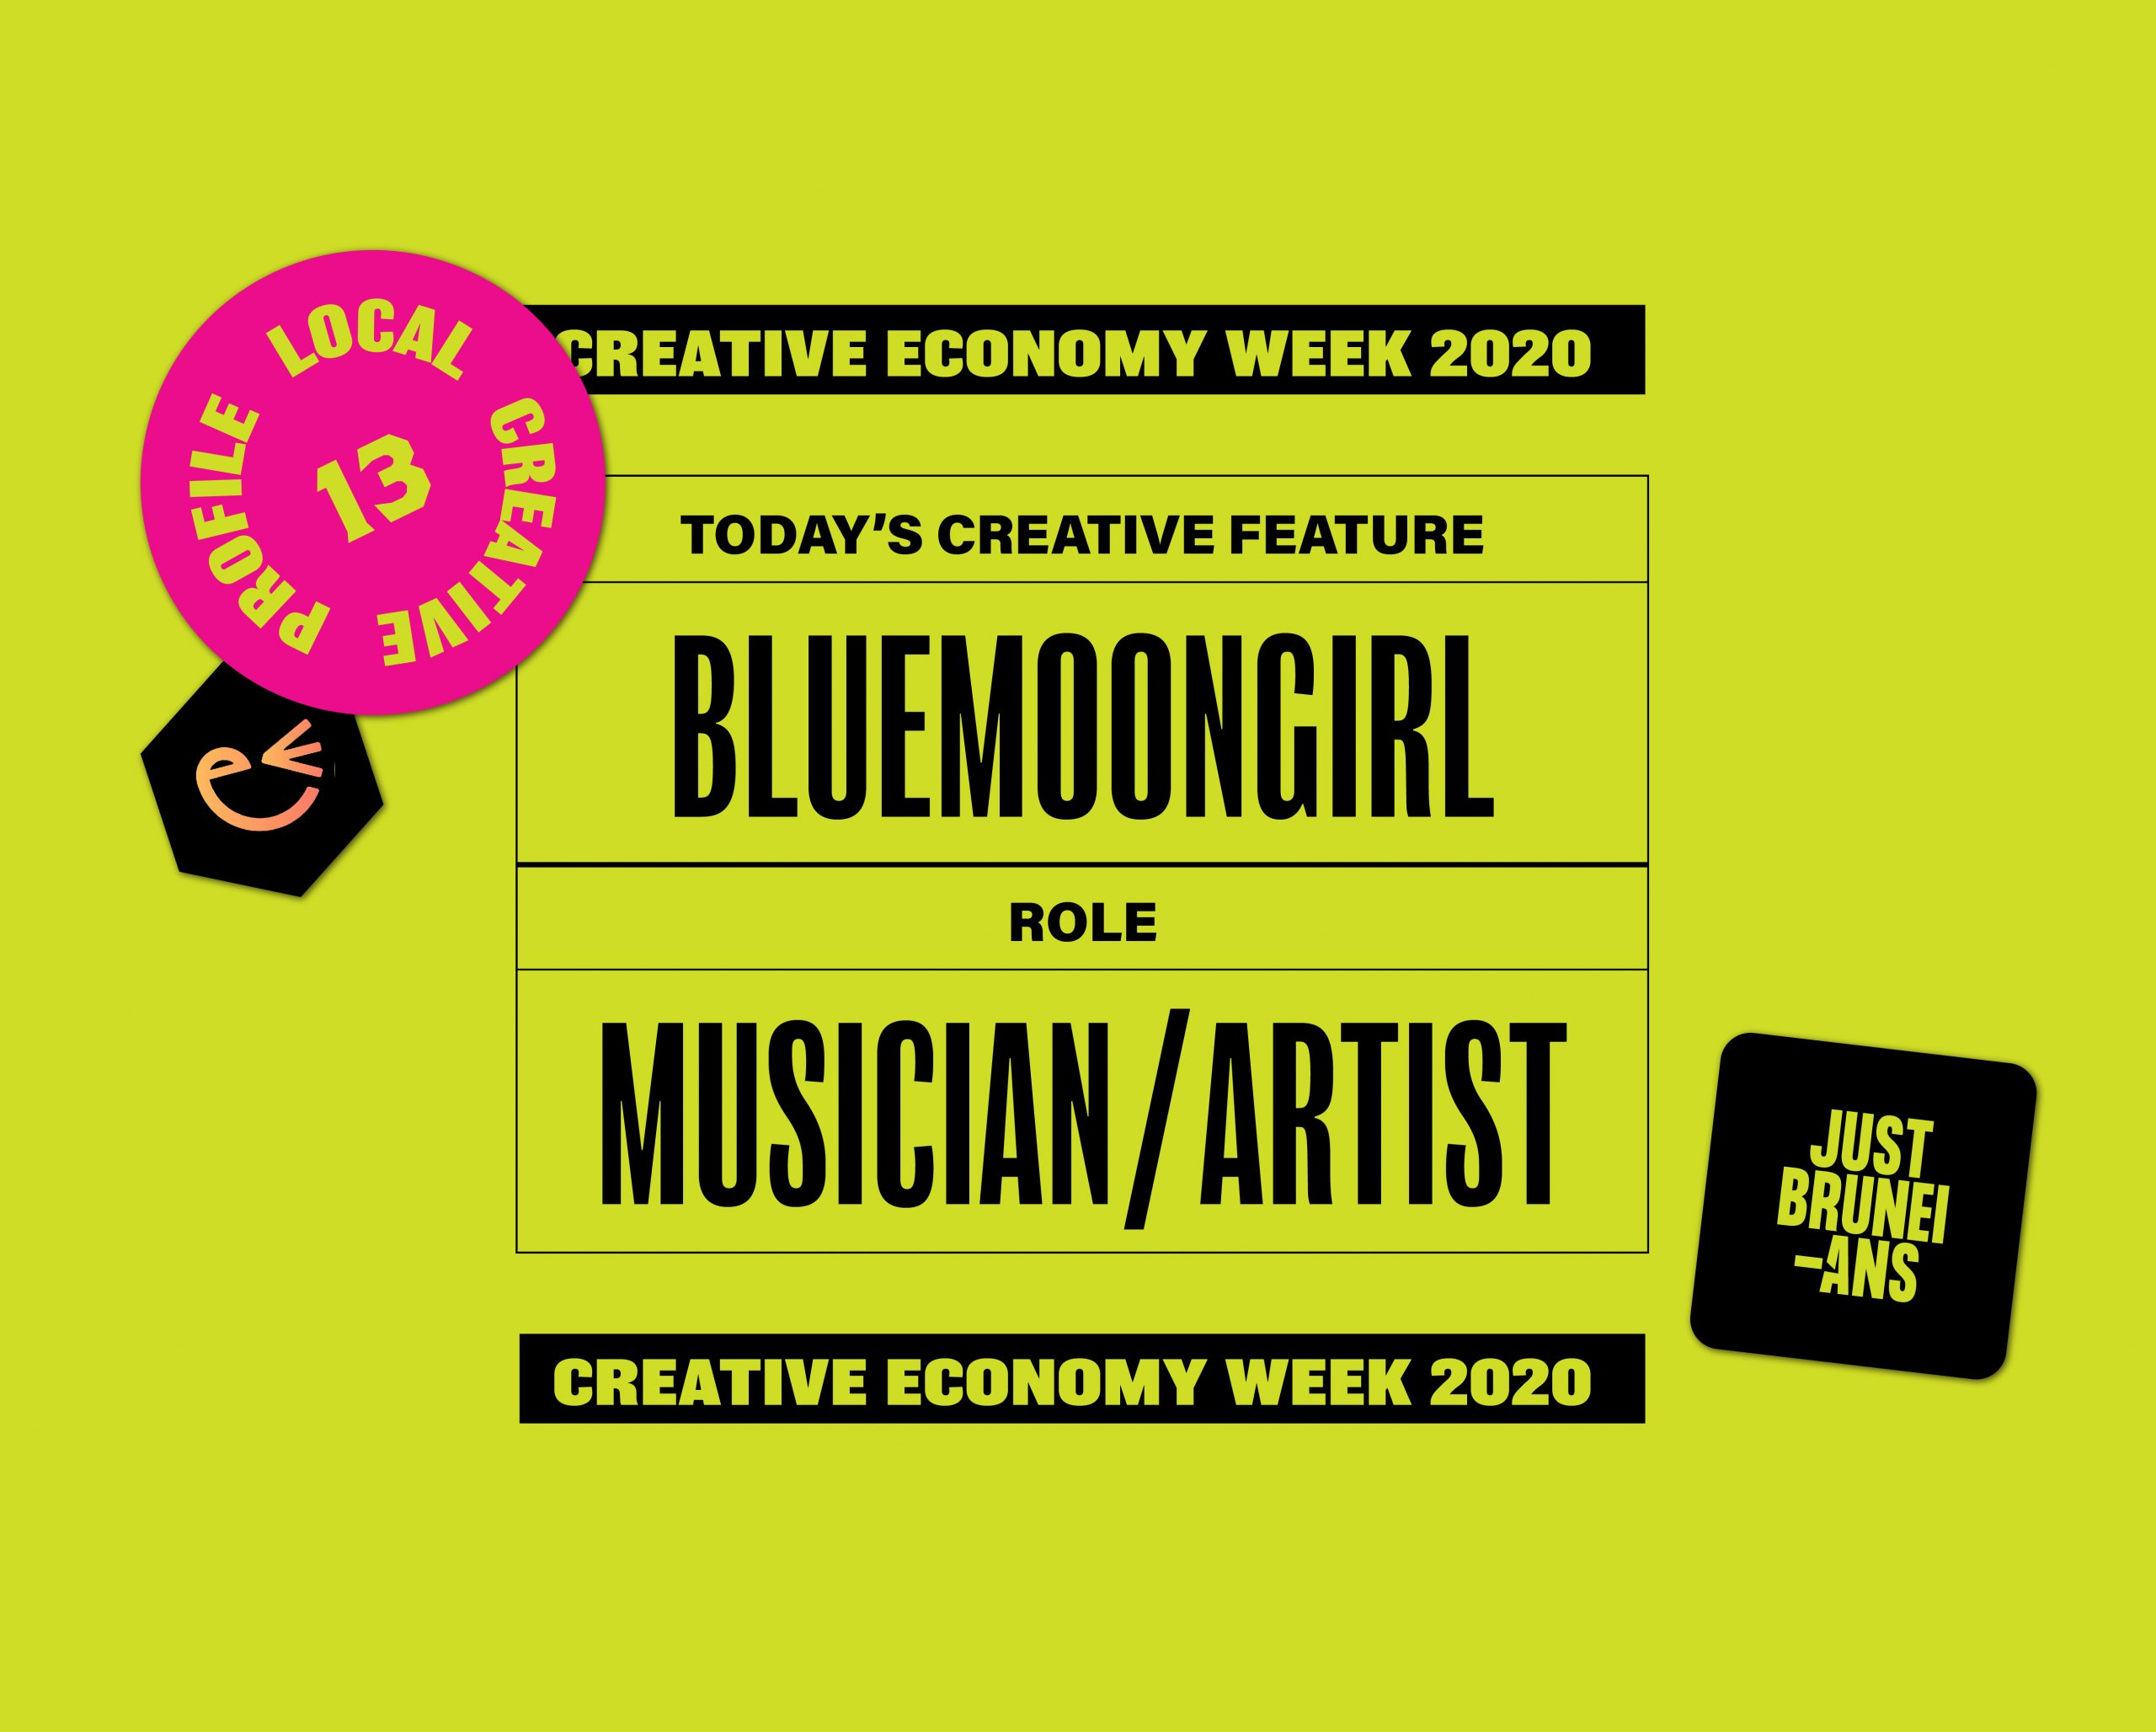 Today's Creative Feature: Bluemoongirl | Creative Economy Week 2020